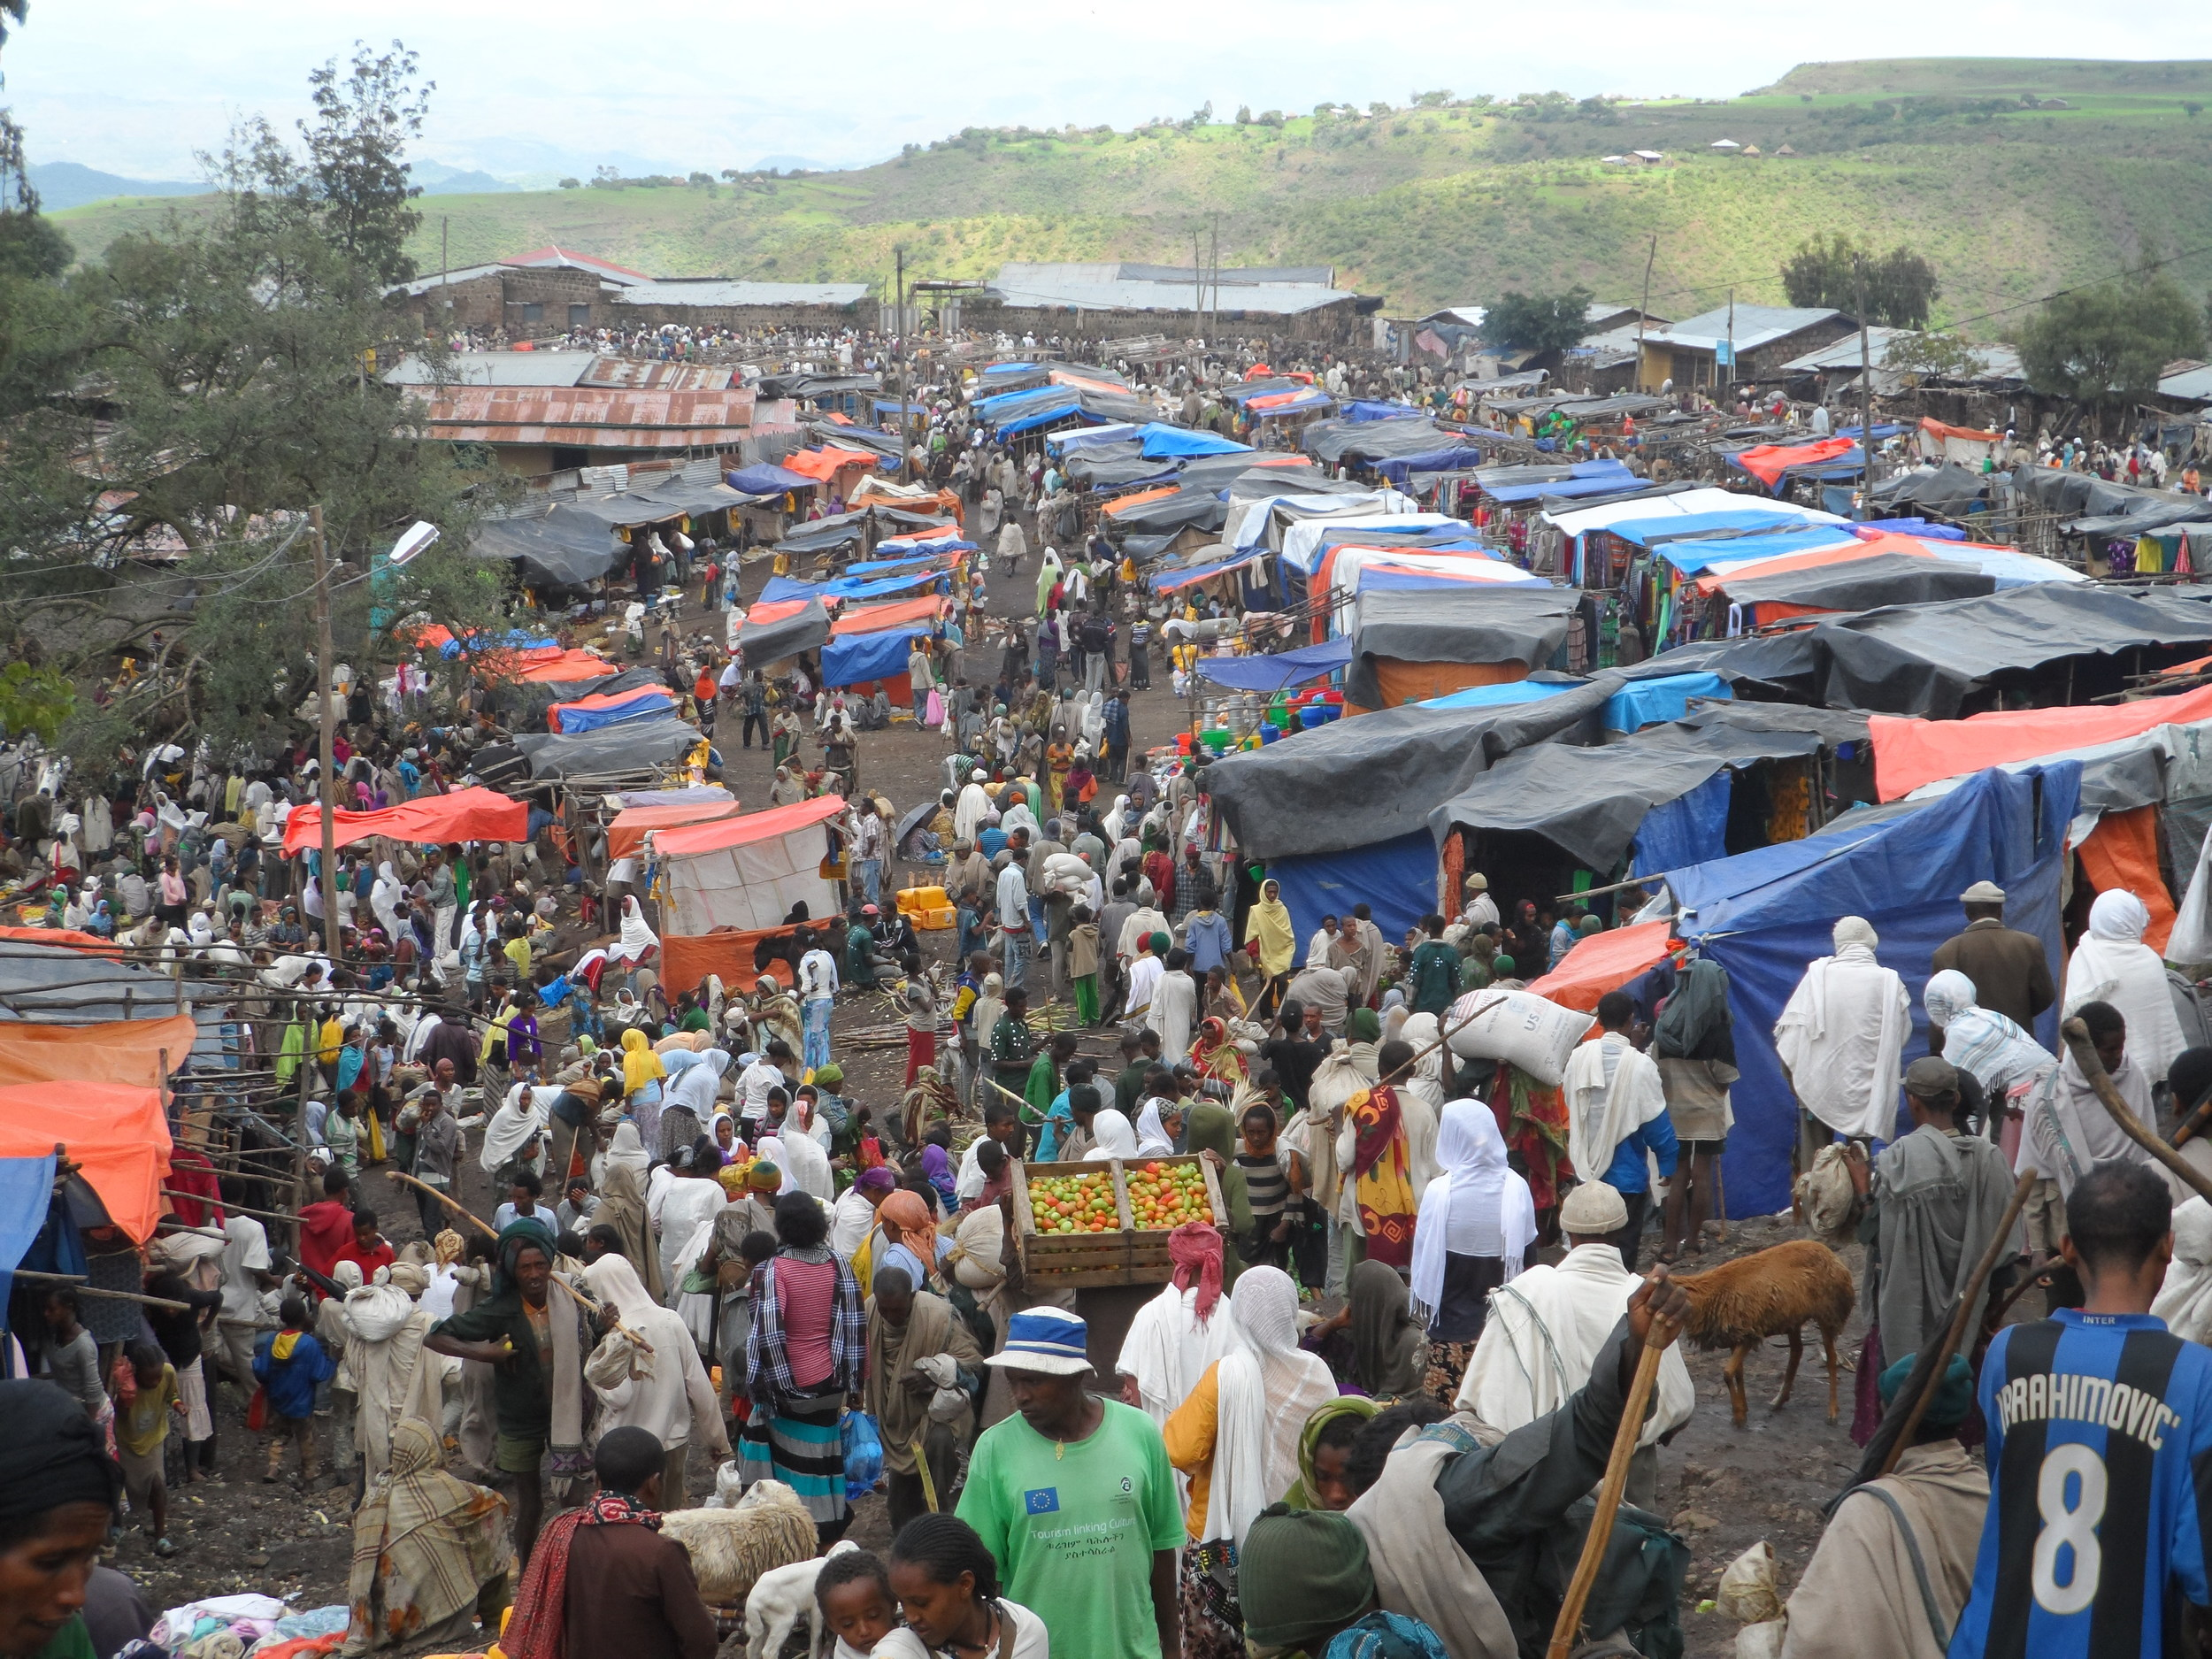 the Lalibela market